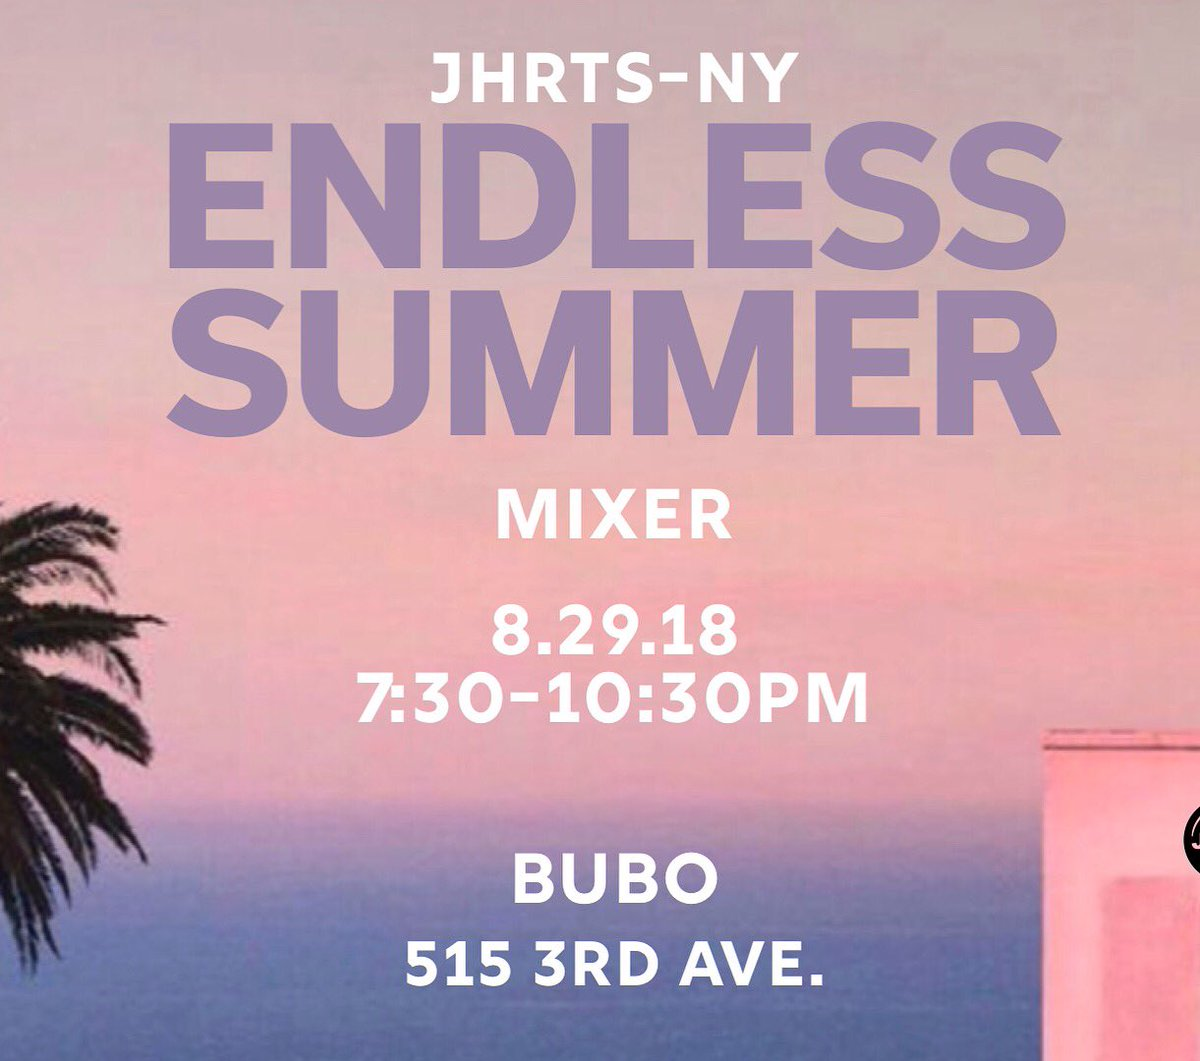 Come join us next Wednesday 8/29 for our August Monthly Mixer!!! Help us keep summer going 😊 #JHRTS #monthlymixer